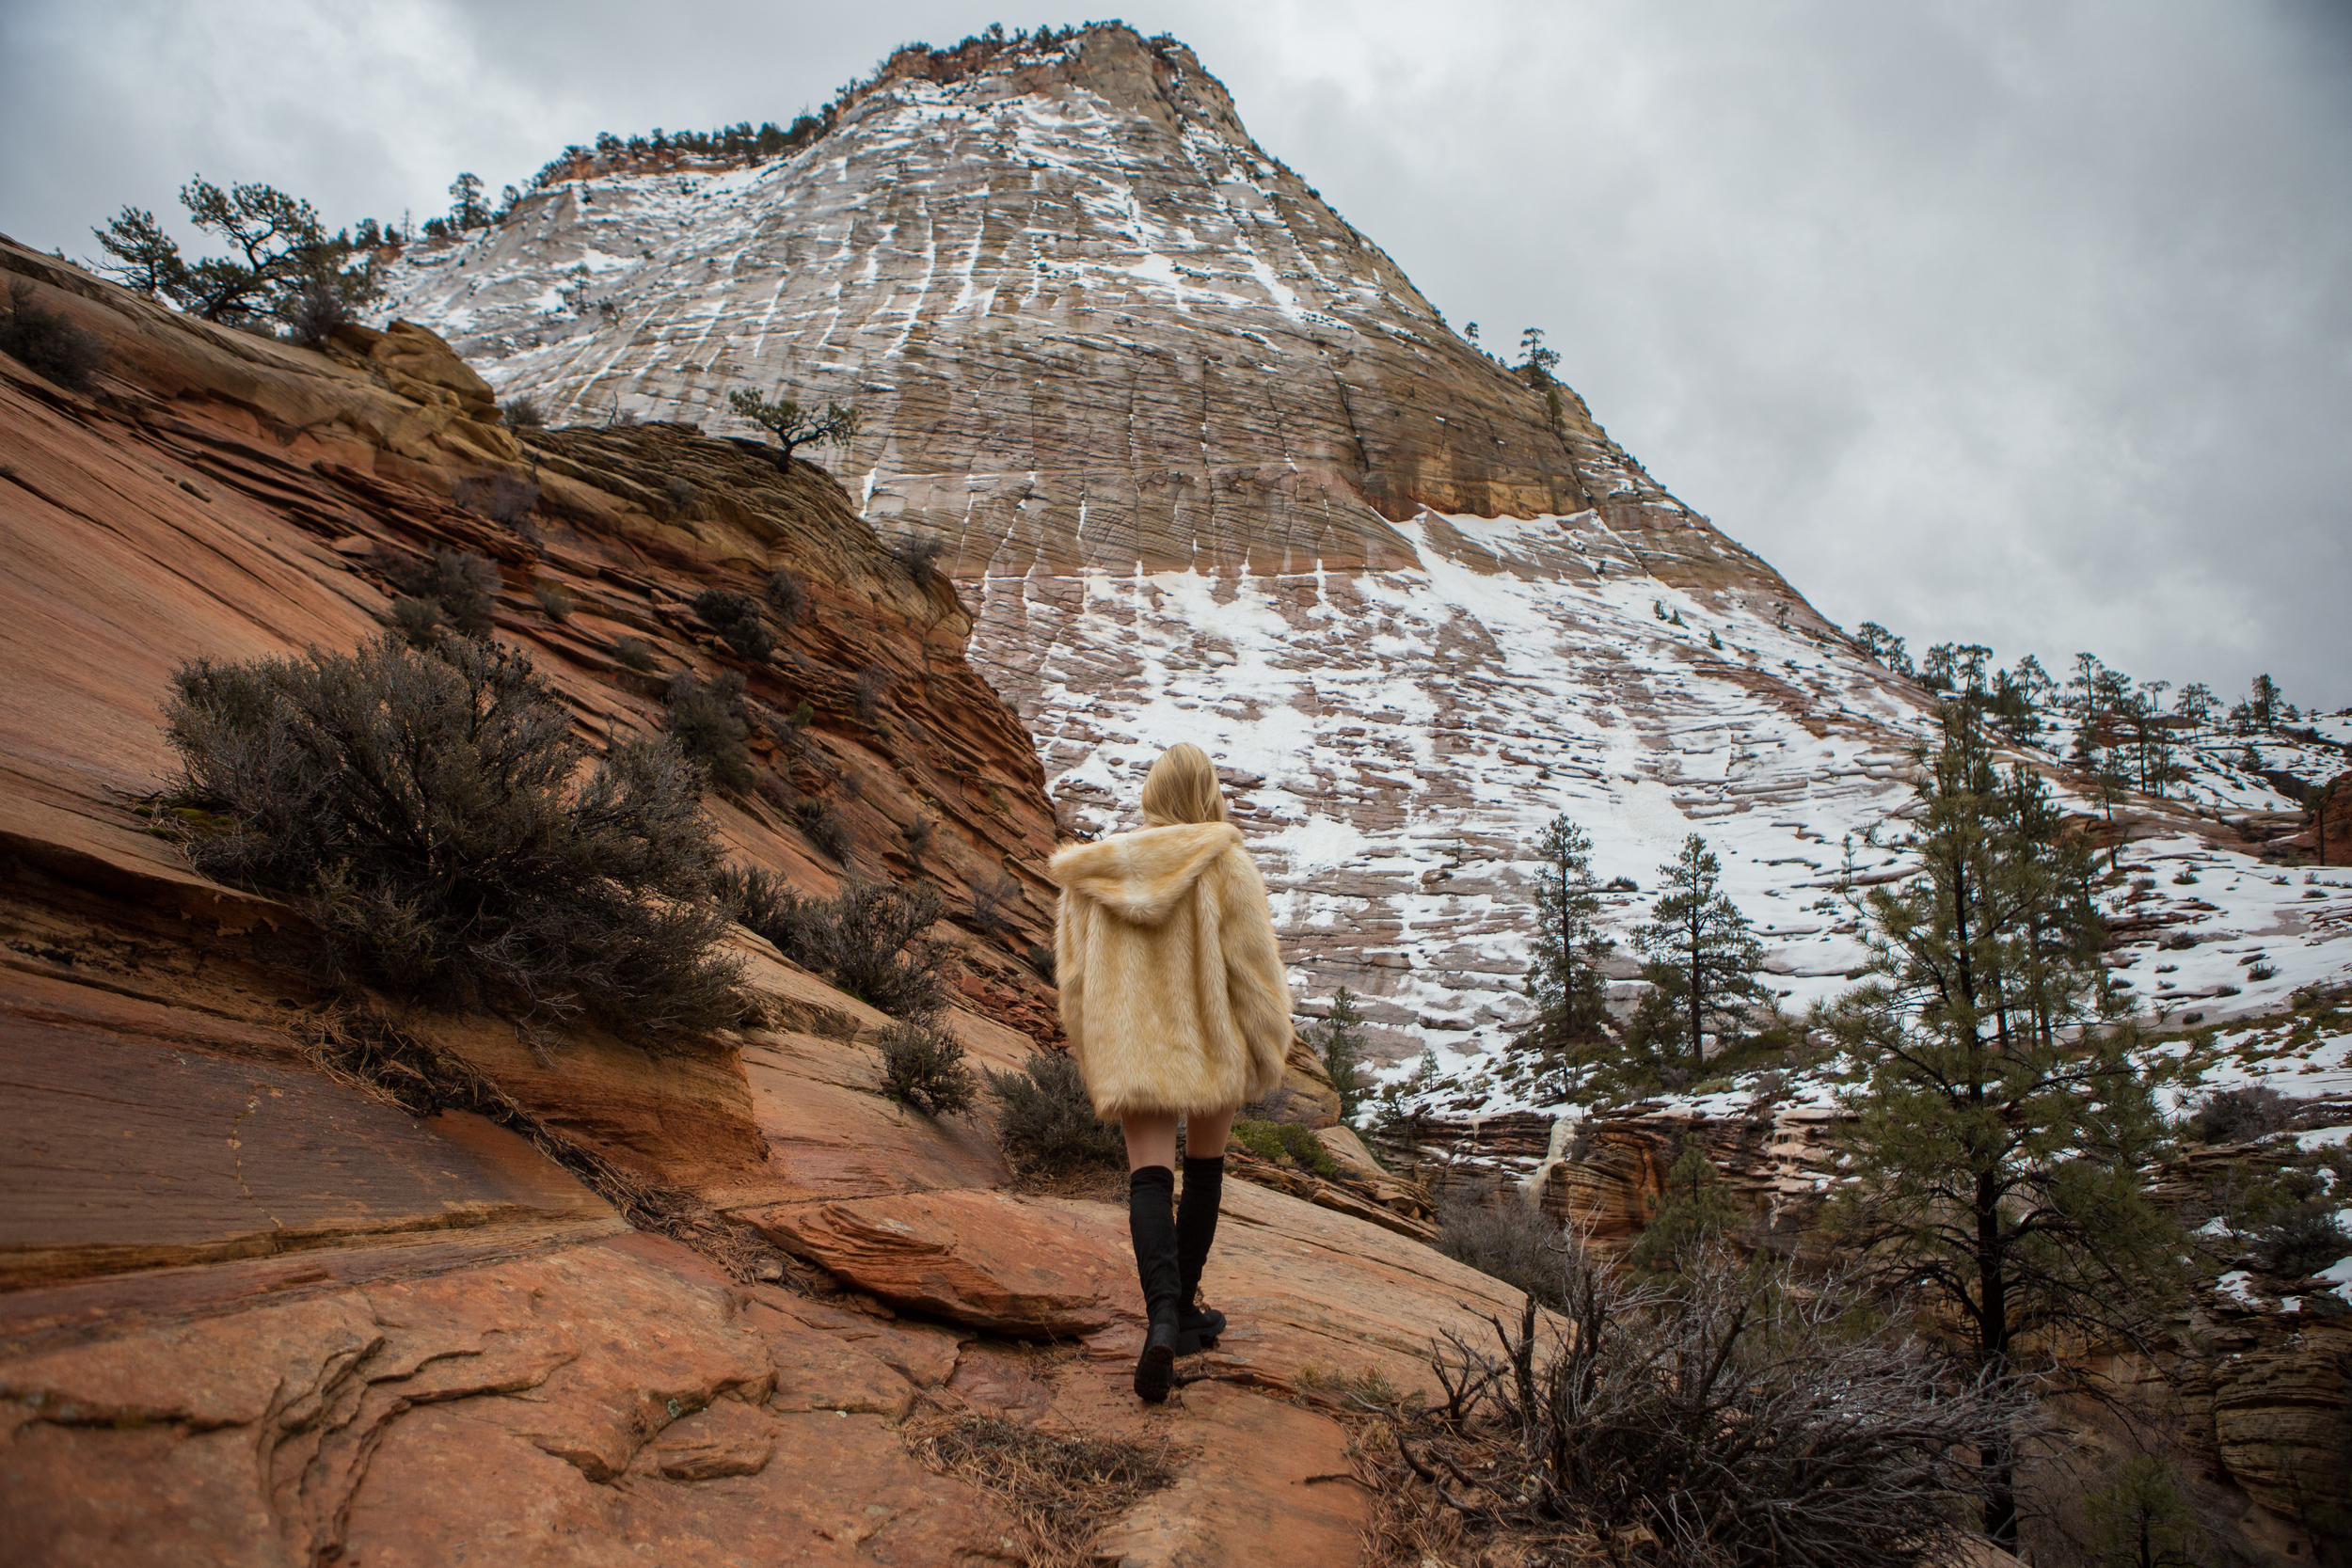 AstroBandit_JordanRose_Zion_WinterInZion_Snow_Fashion_NationalPark_2.jpg